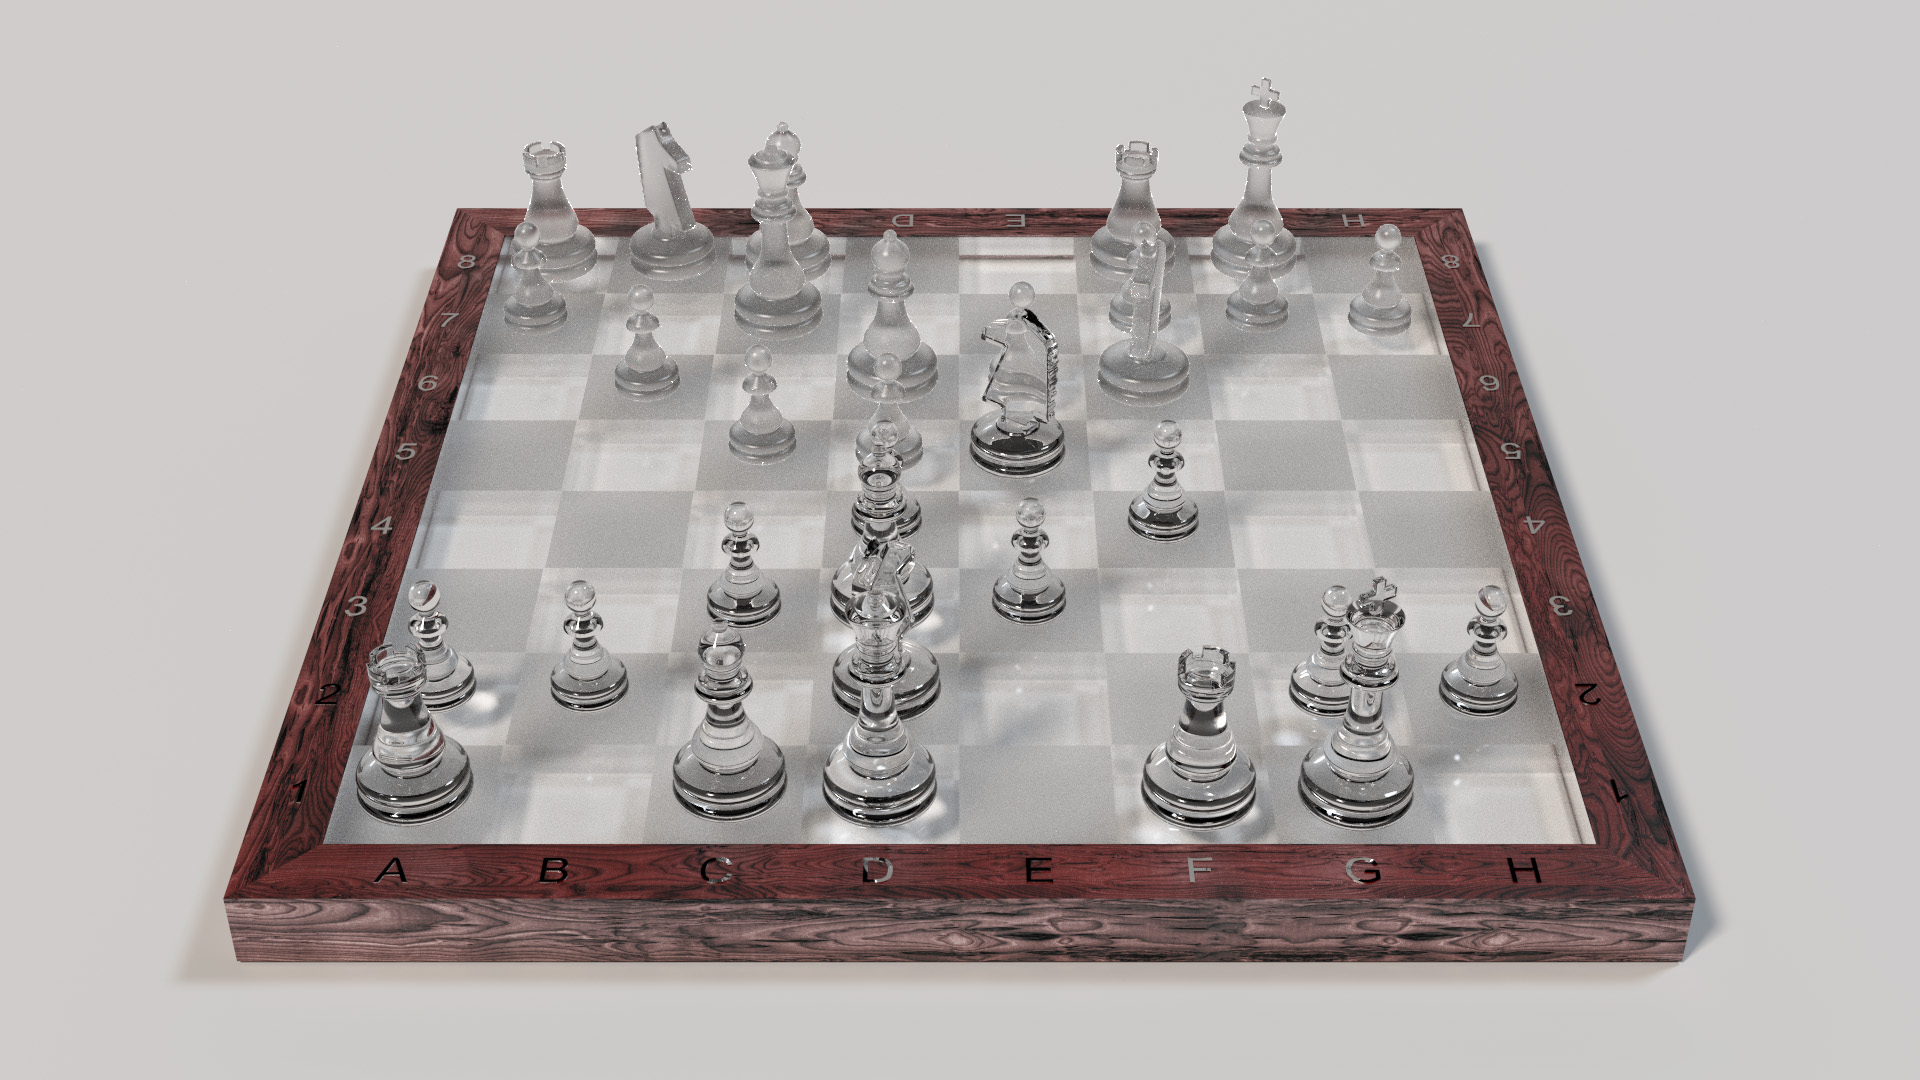 Chessboard with ground glass and clear glass pieces. Rendered using BDPT.